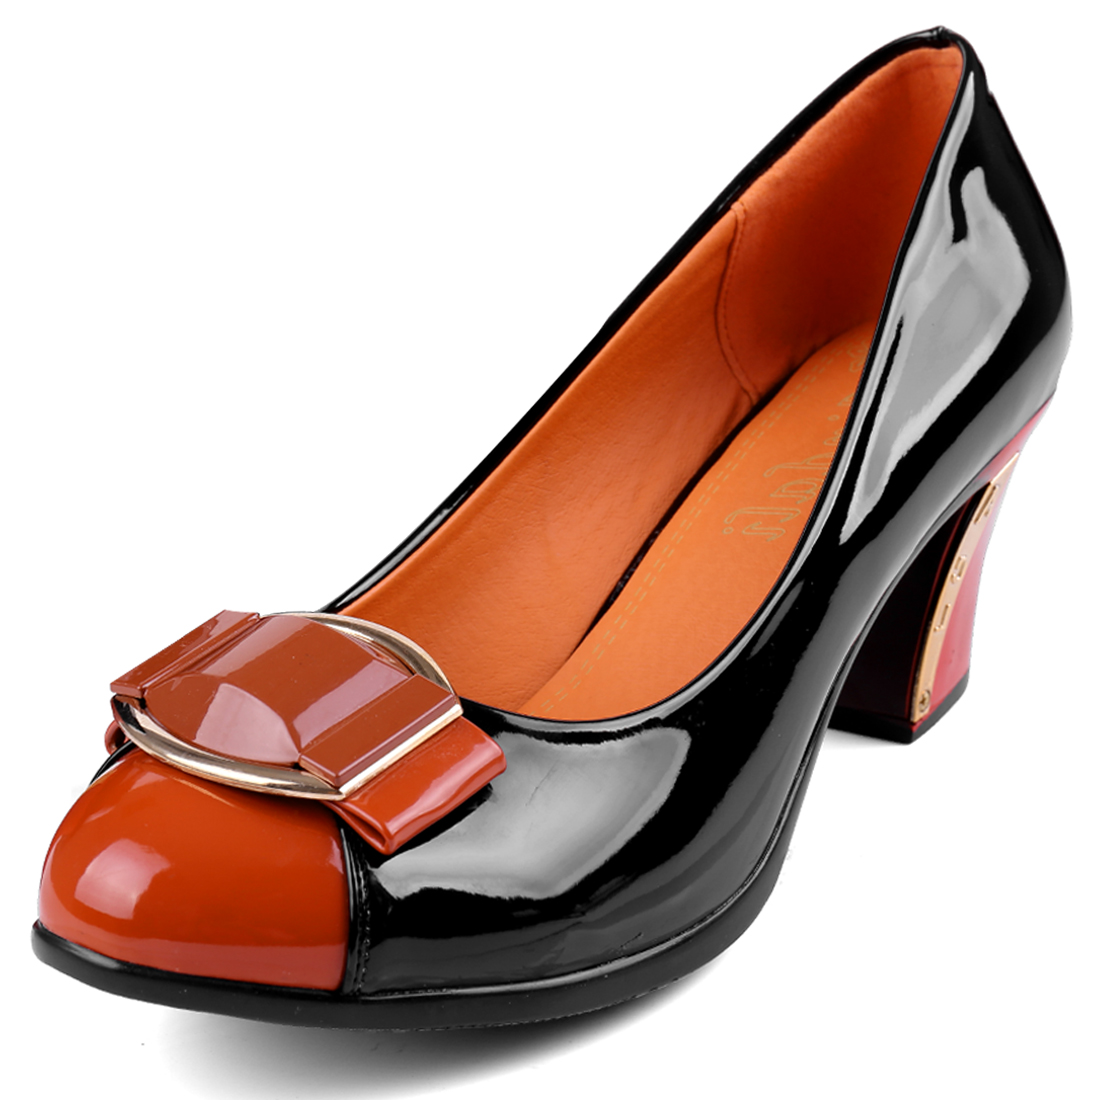 Women High Heel Metal Decor Color Block Pumps Black Orange US 7